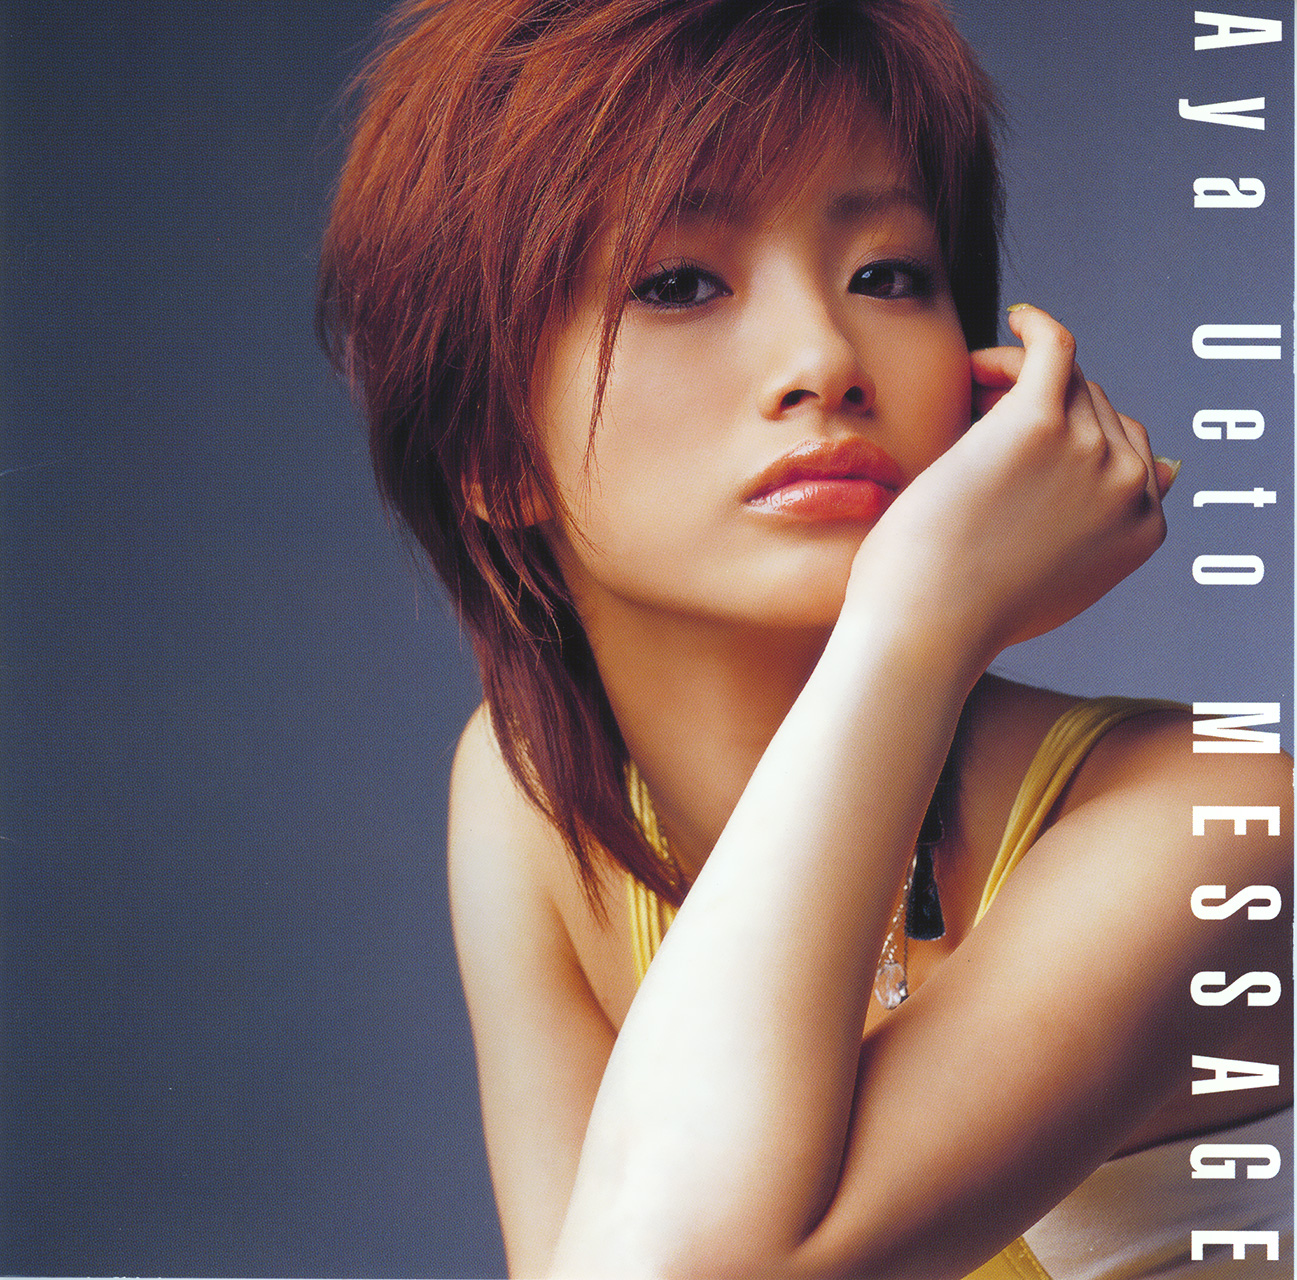 20180826.2135.01 Aya Ueto - Message (2004) (FLAC) cover.jpg